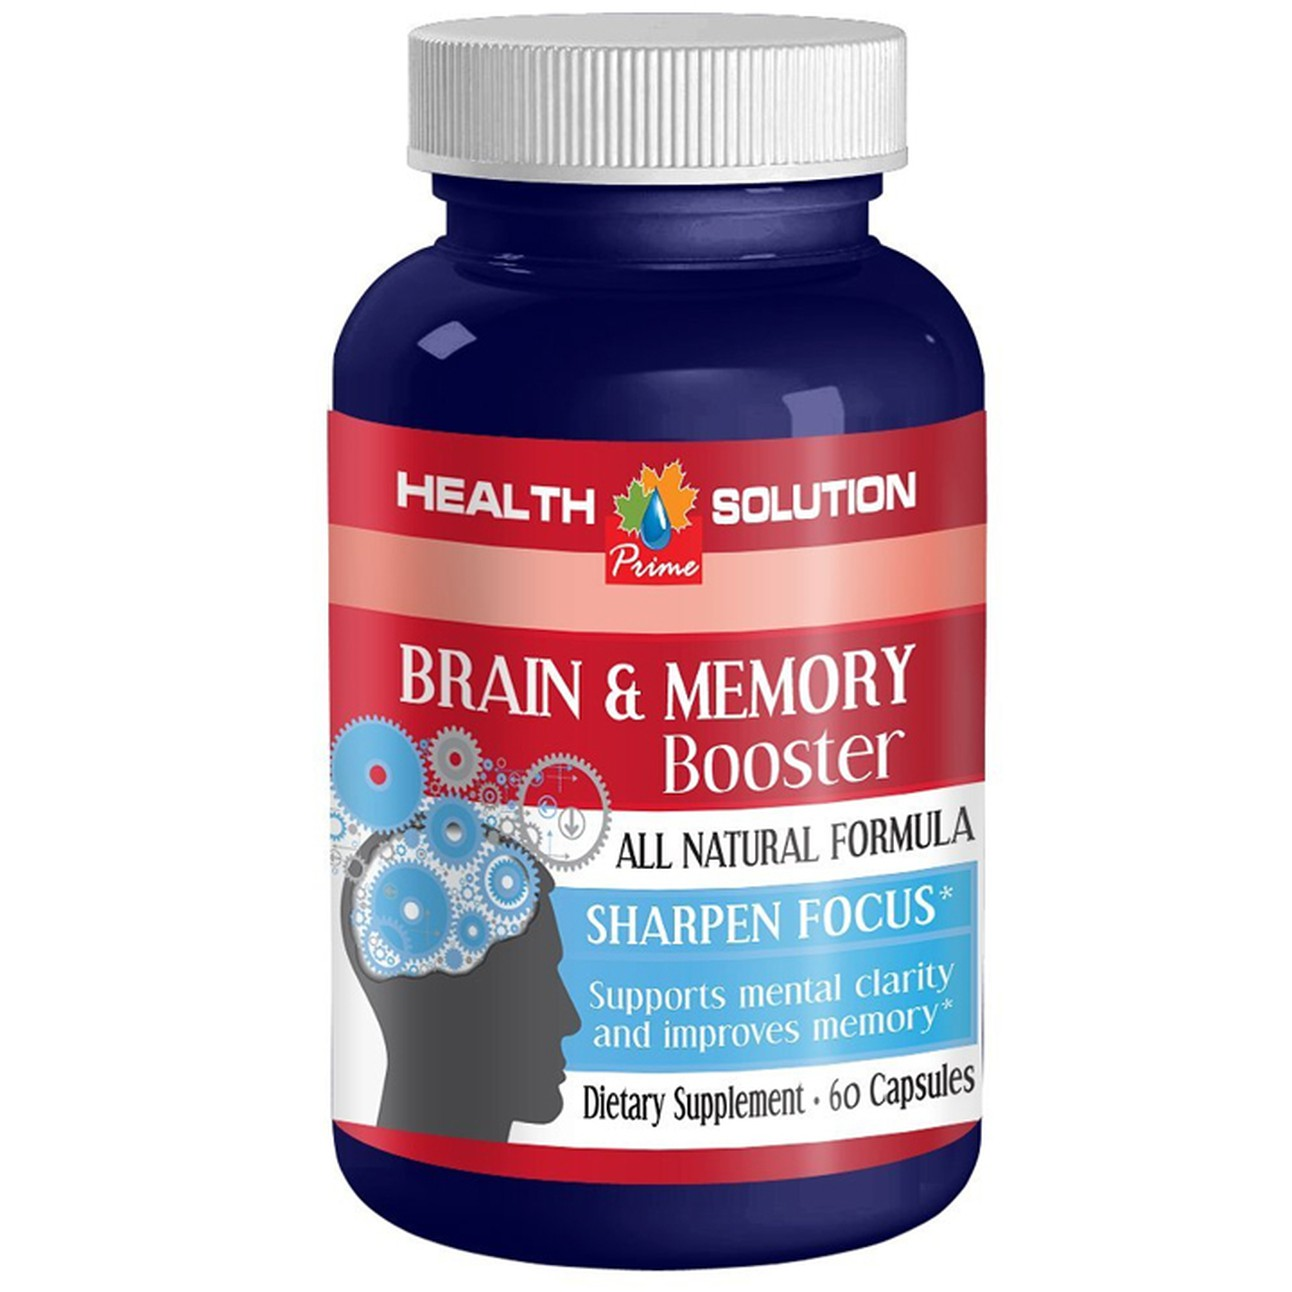 Brain Memory Booster Supplement Supports And Maintains Memory